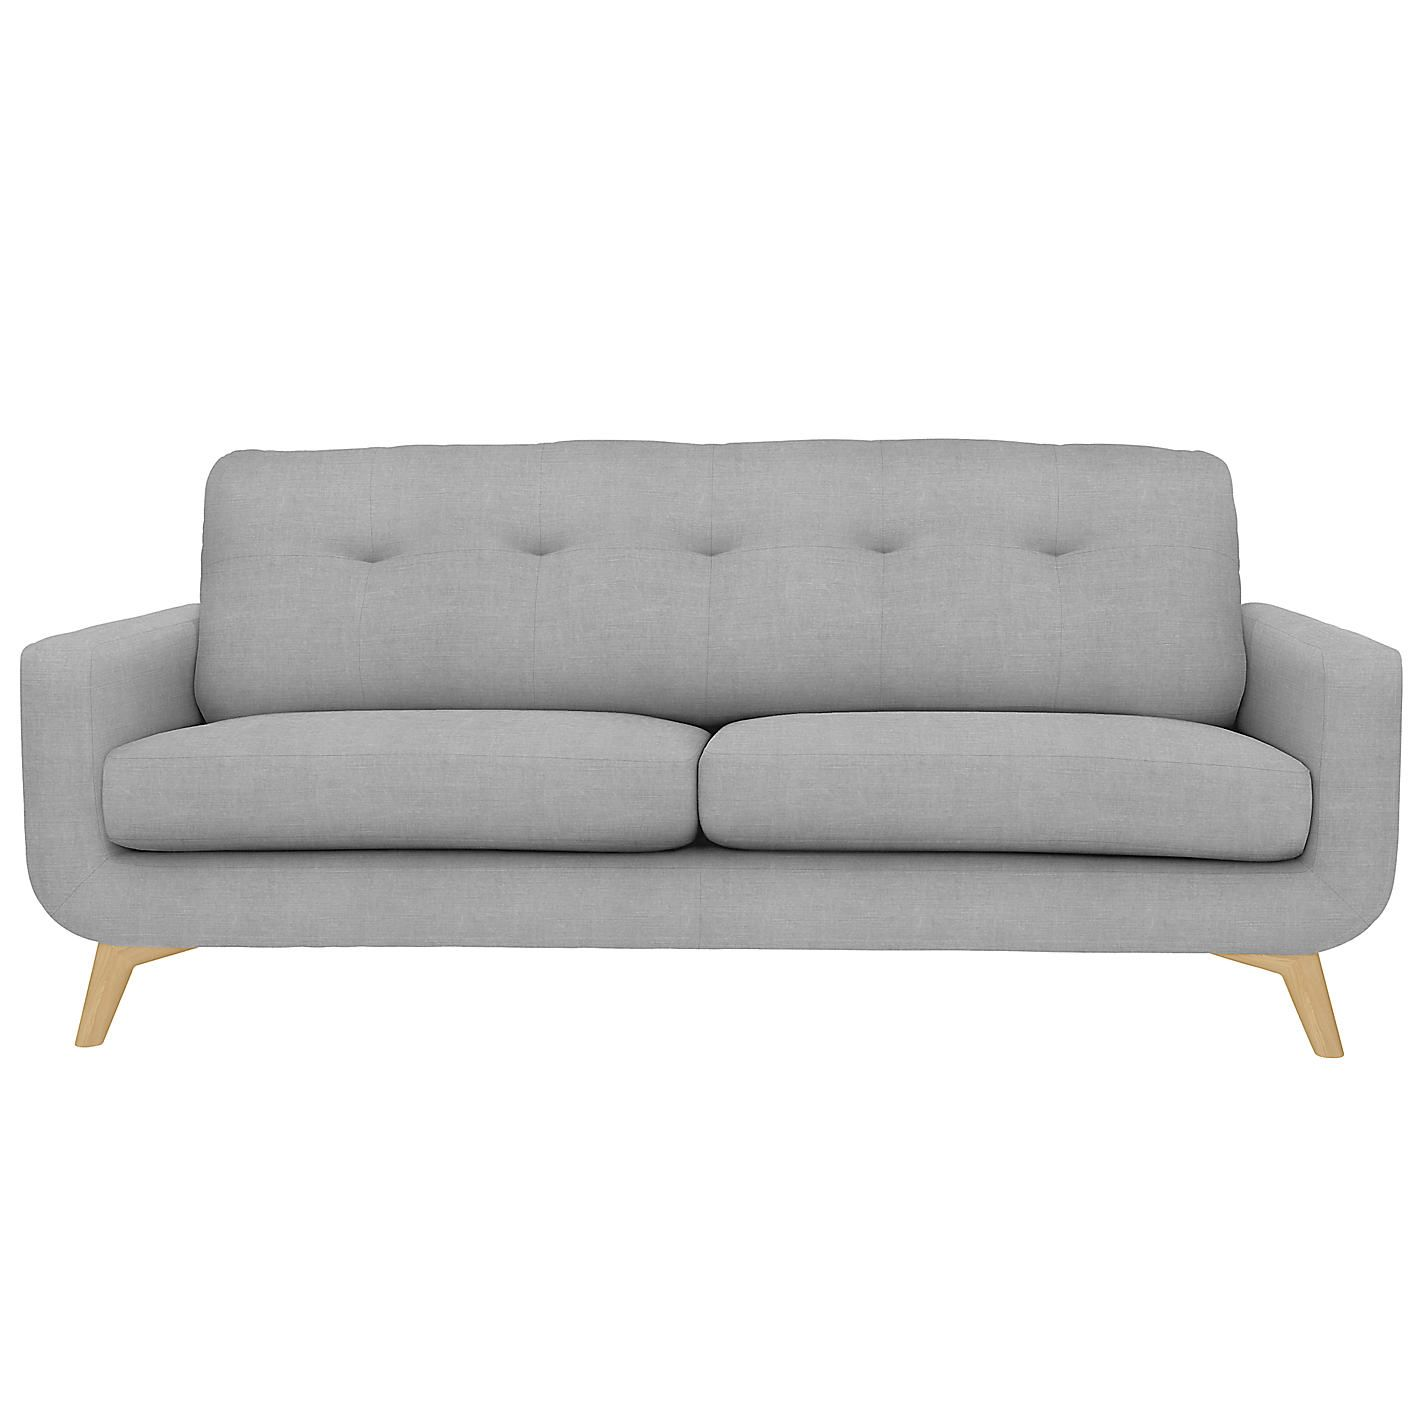 Barbican Sofa, From John Lewis